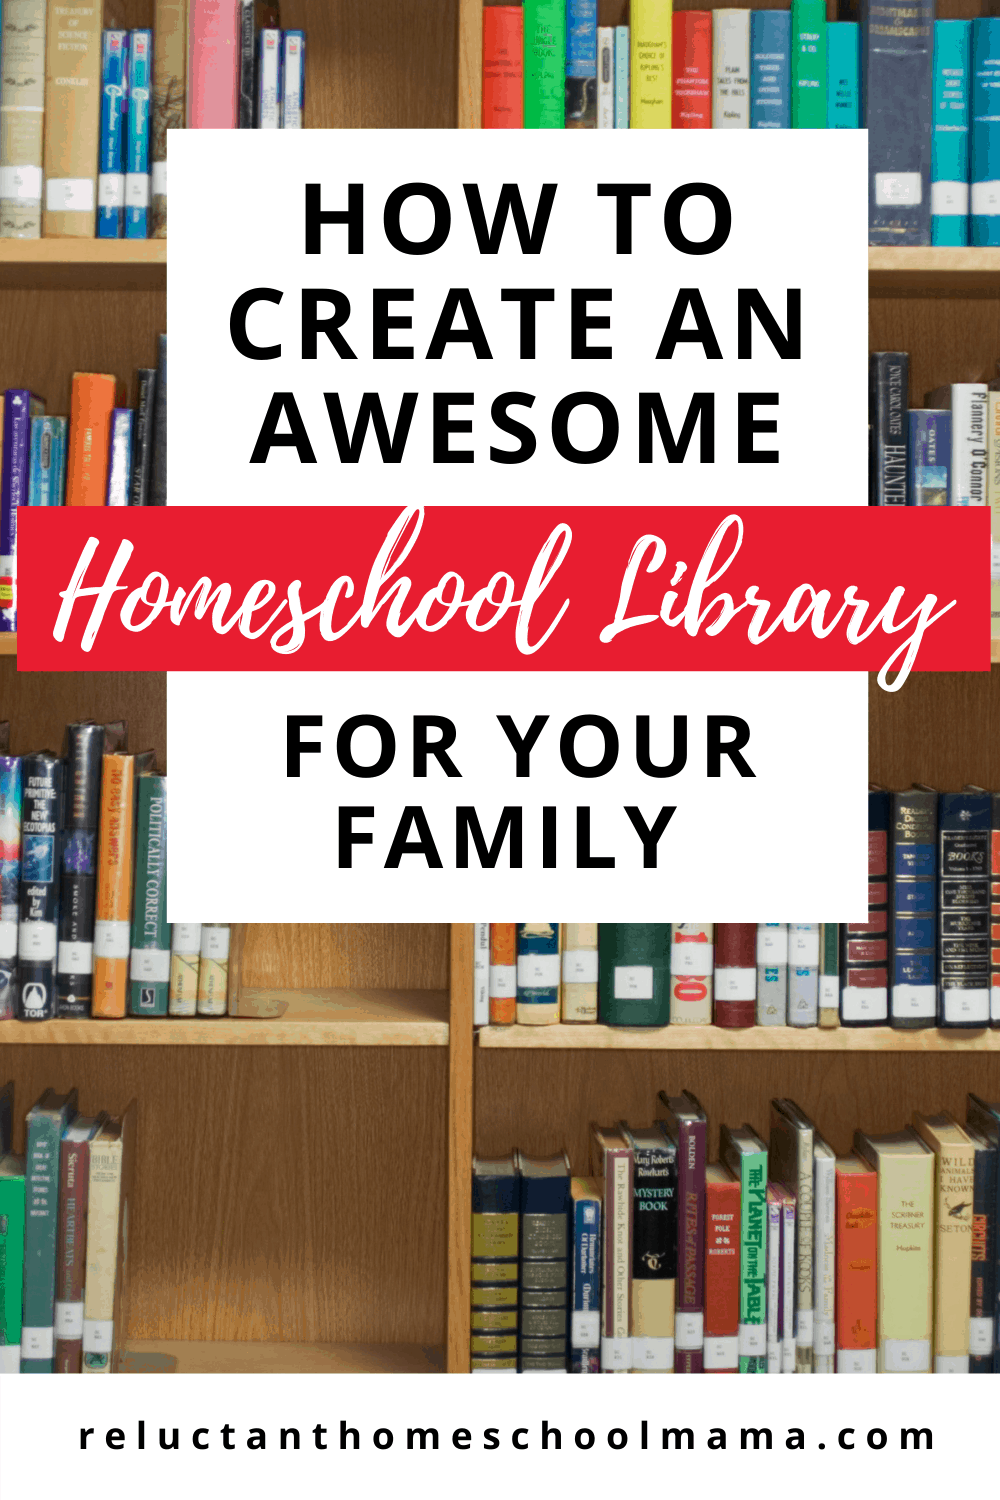 How to Easily Create an Amazing Homeschool Library